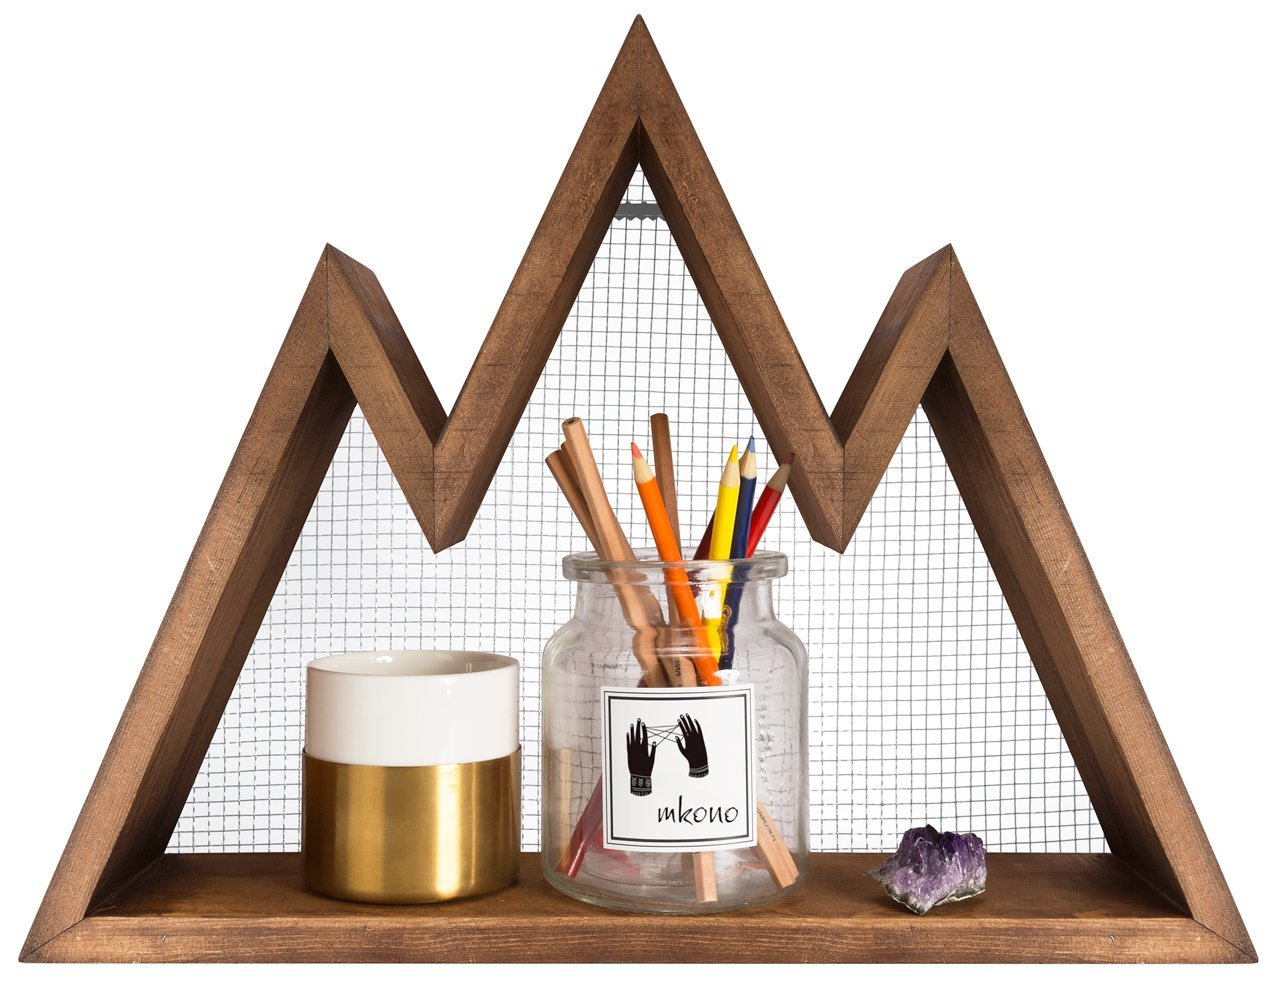 Mkono Wall Shelf Wood Floating Mountain Shelf Crystal Display Shelf Rustic Triangle Wall Art Geometric Decor for Nursery, Bedroom -Perfect Housewarming Gifts - ✔ Mkono mountain shelf can be a statement piece in any room. It's unique design and shape can stand alone or display home decor items. It's ideal for wall organizer and small accessories storage in open spaces. ✔ Geometric decor wall shelf is made of wood and the classic walnut finish fits almost any styles. The rustic wooden texture is perfect for home decor,nursery decor,bedroom decor and more. Instruction and install hardware are included. ✔ Floating wooden shelf allows you to organize family photos, crystal display and small plants effectively without taking too much space, whereas providing a simple and modern ornament to your home. - wall-shelves, living-room-furniture, living-room - 71X78BRw8WL -